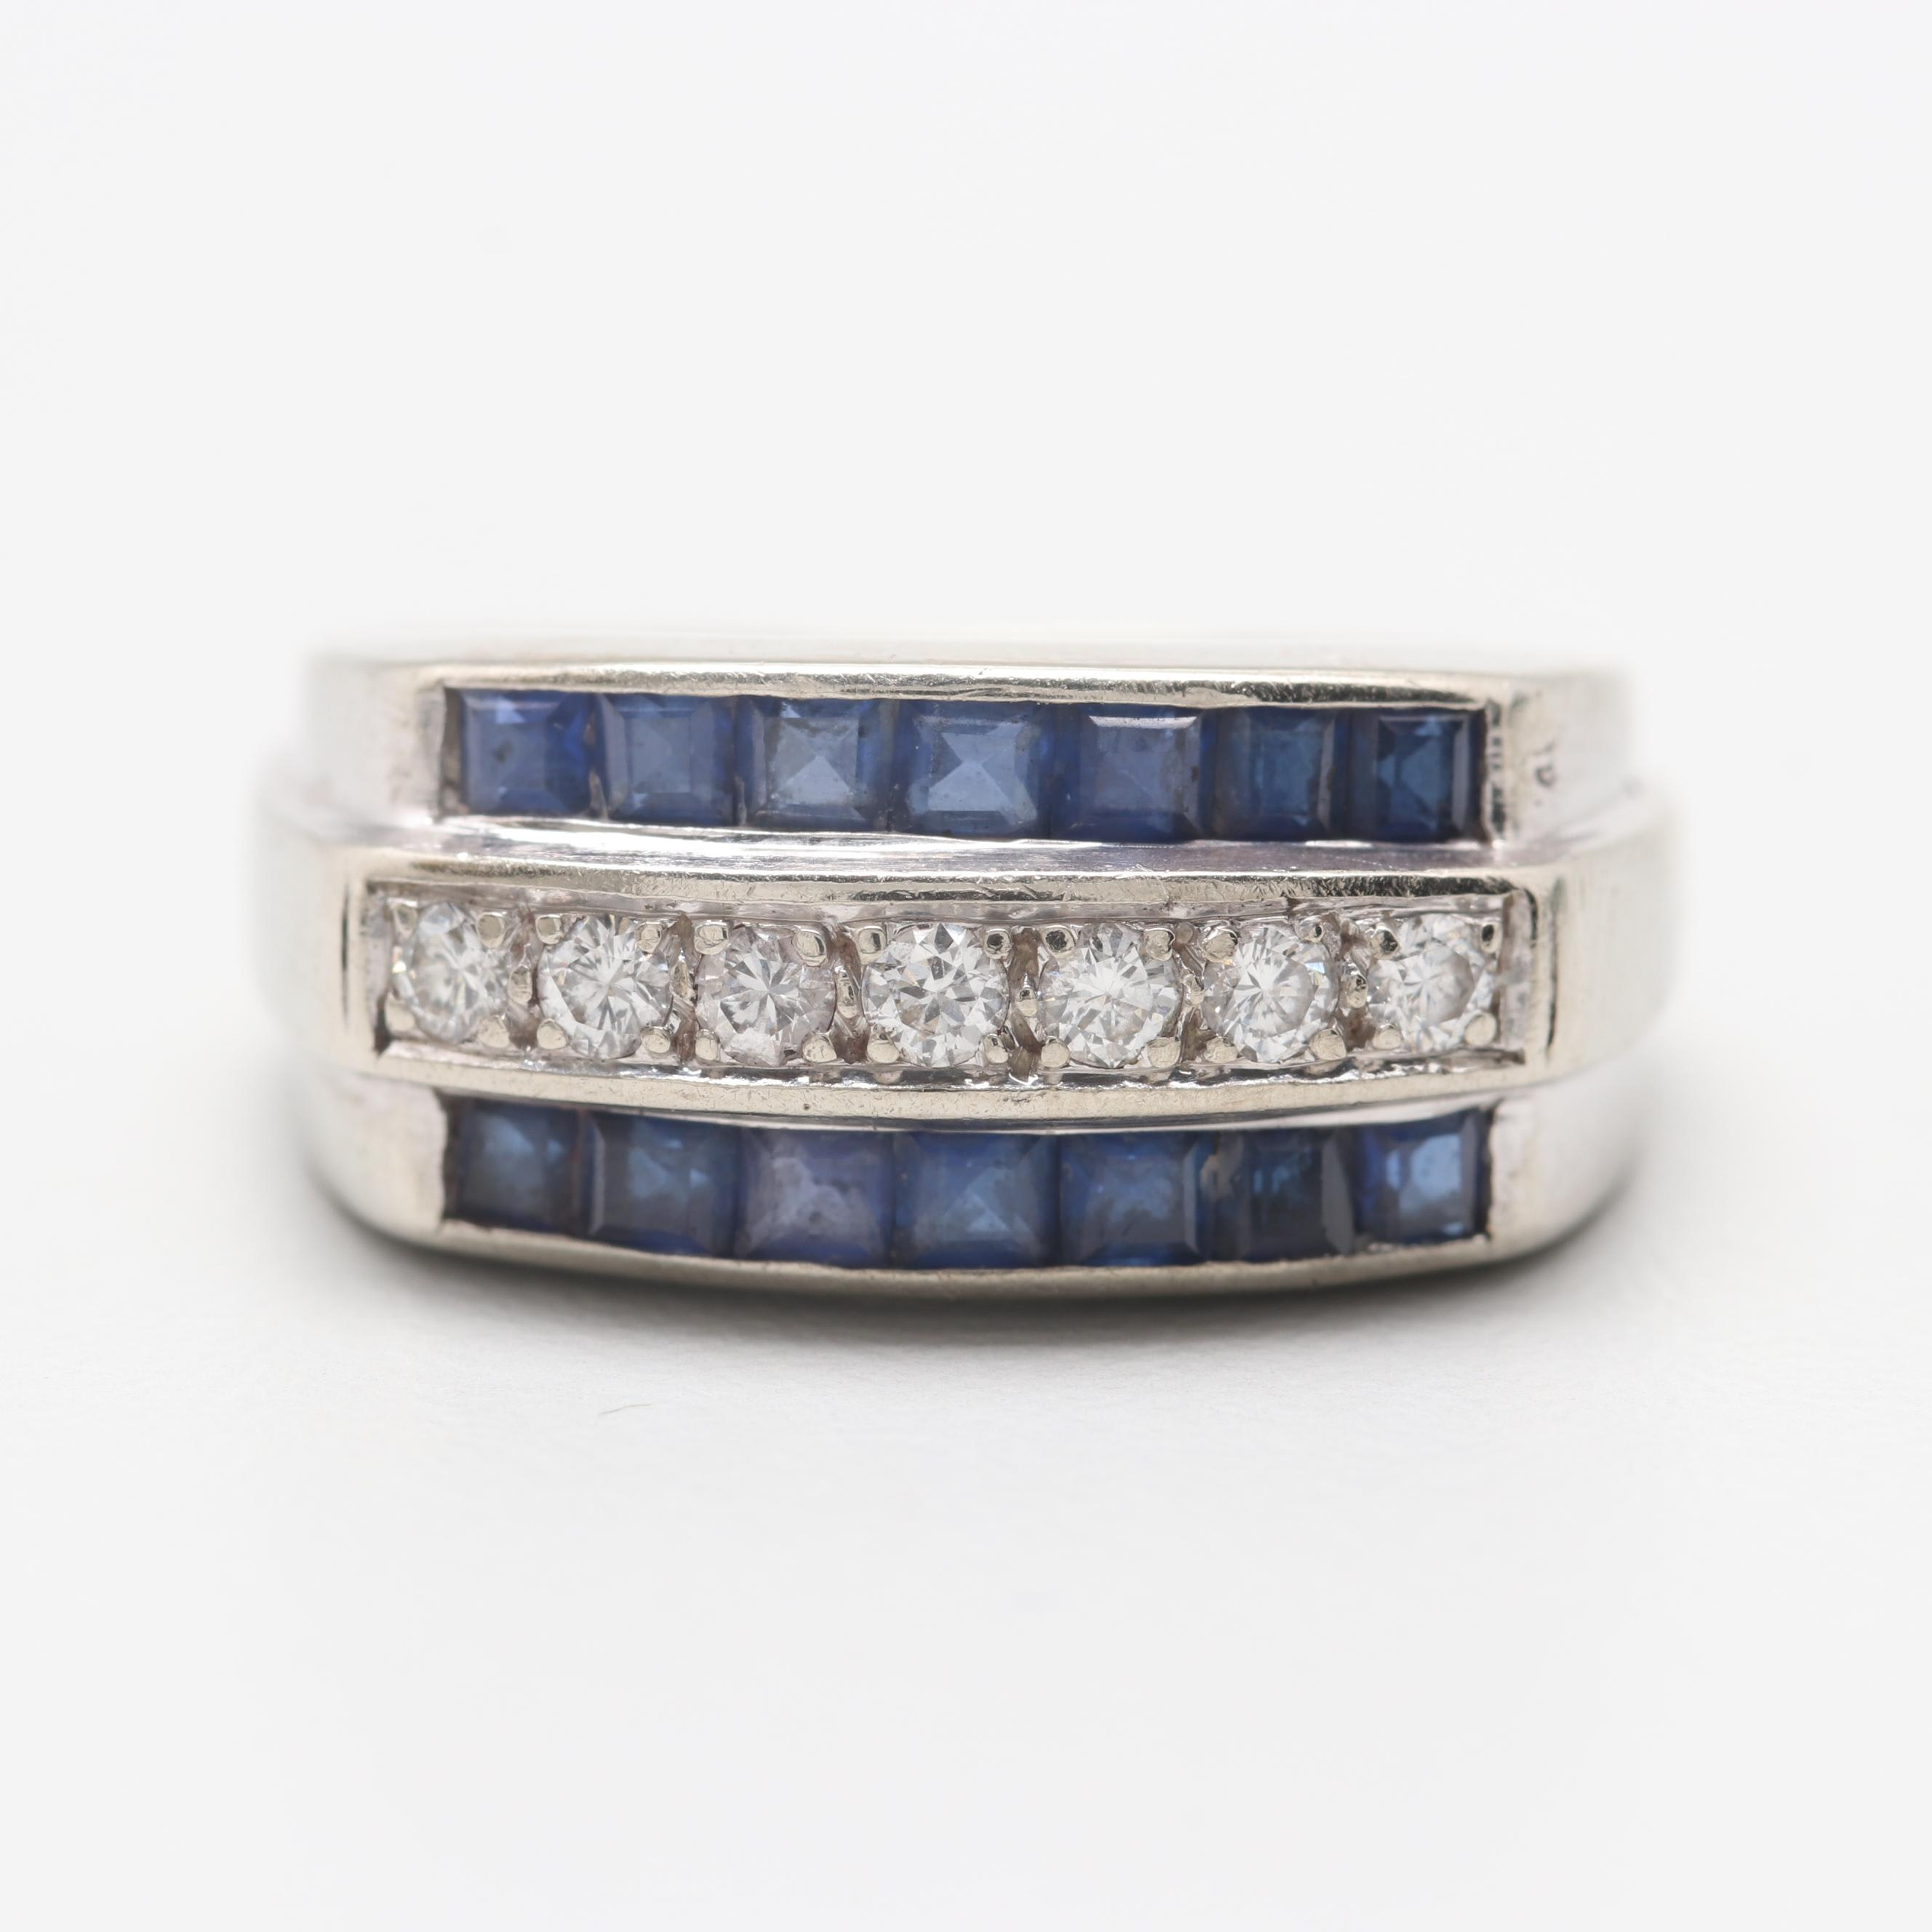 14K White Gold Diamond and Synthetic Sapphire Ring